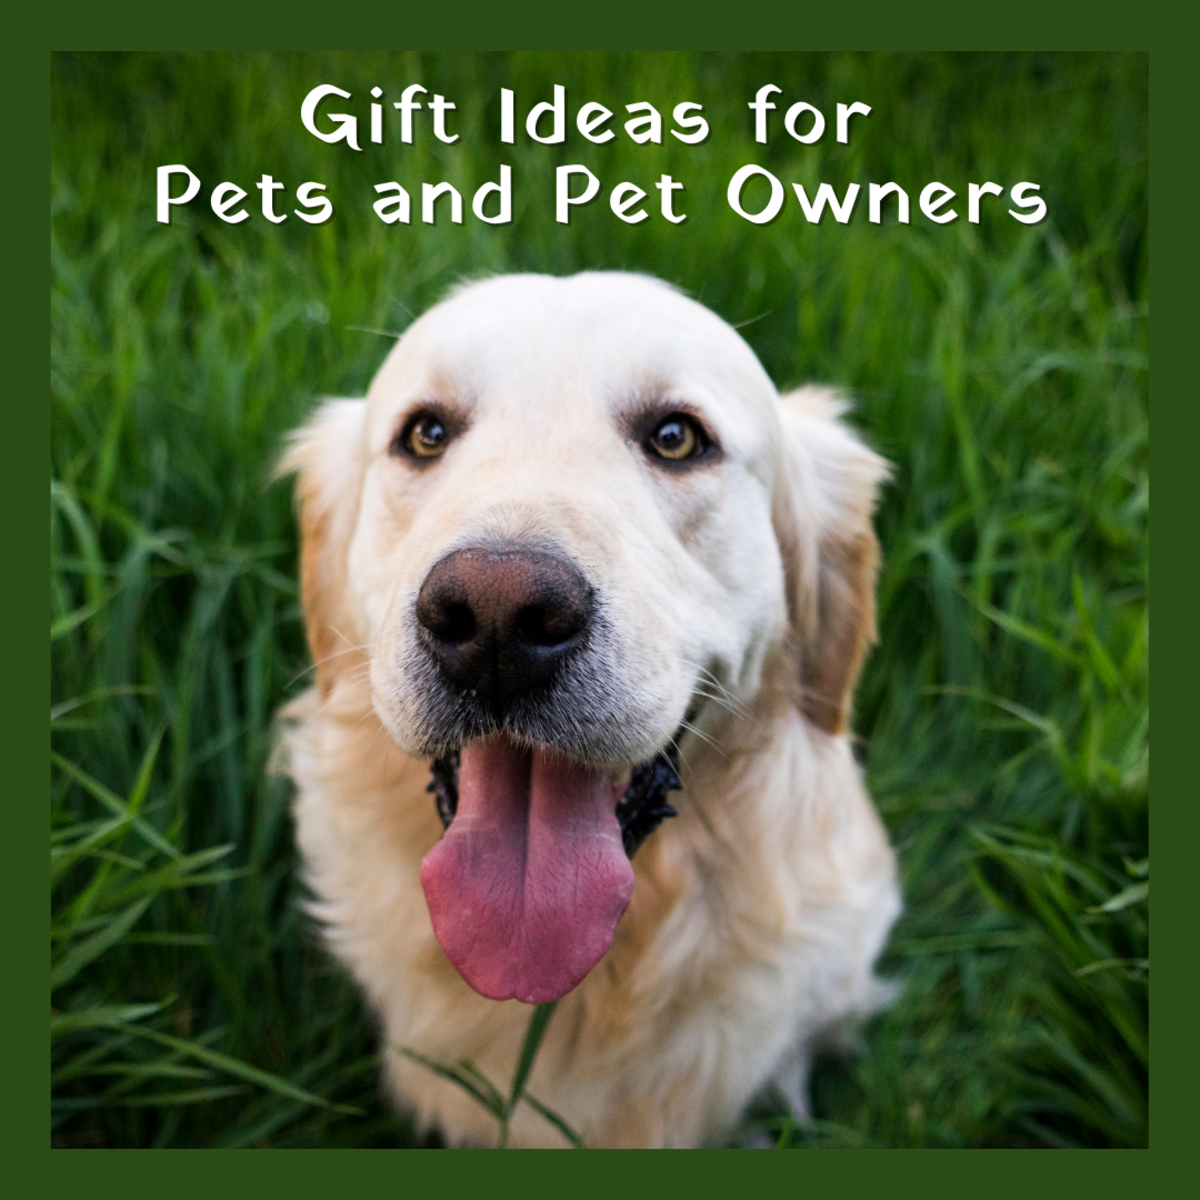 6 Awesome Gift Ideas for Pets and Pet Lovers